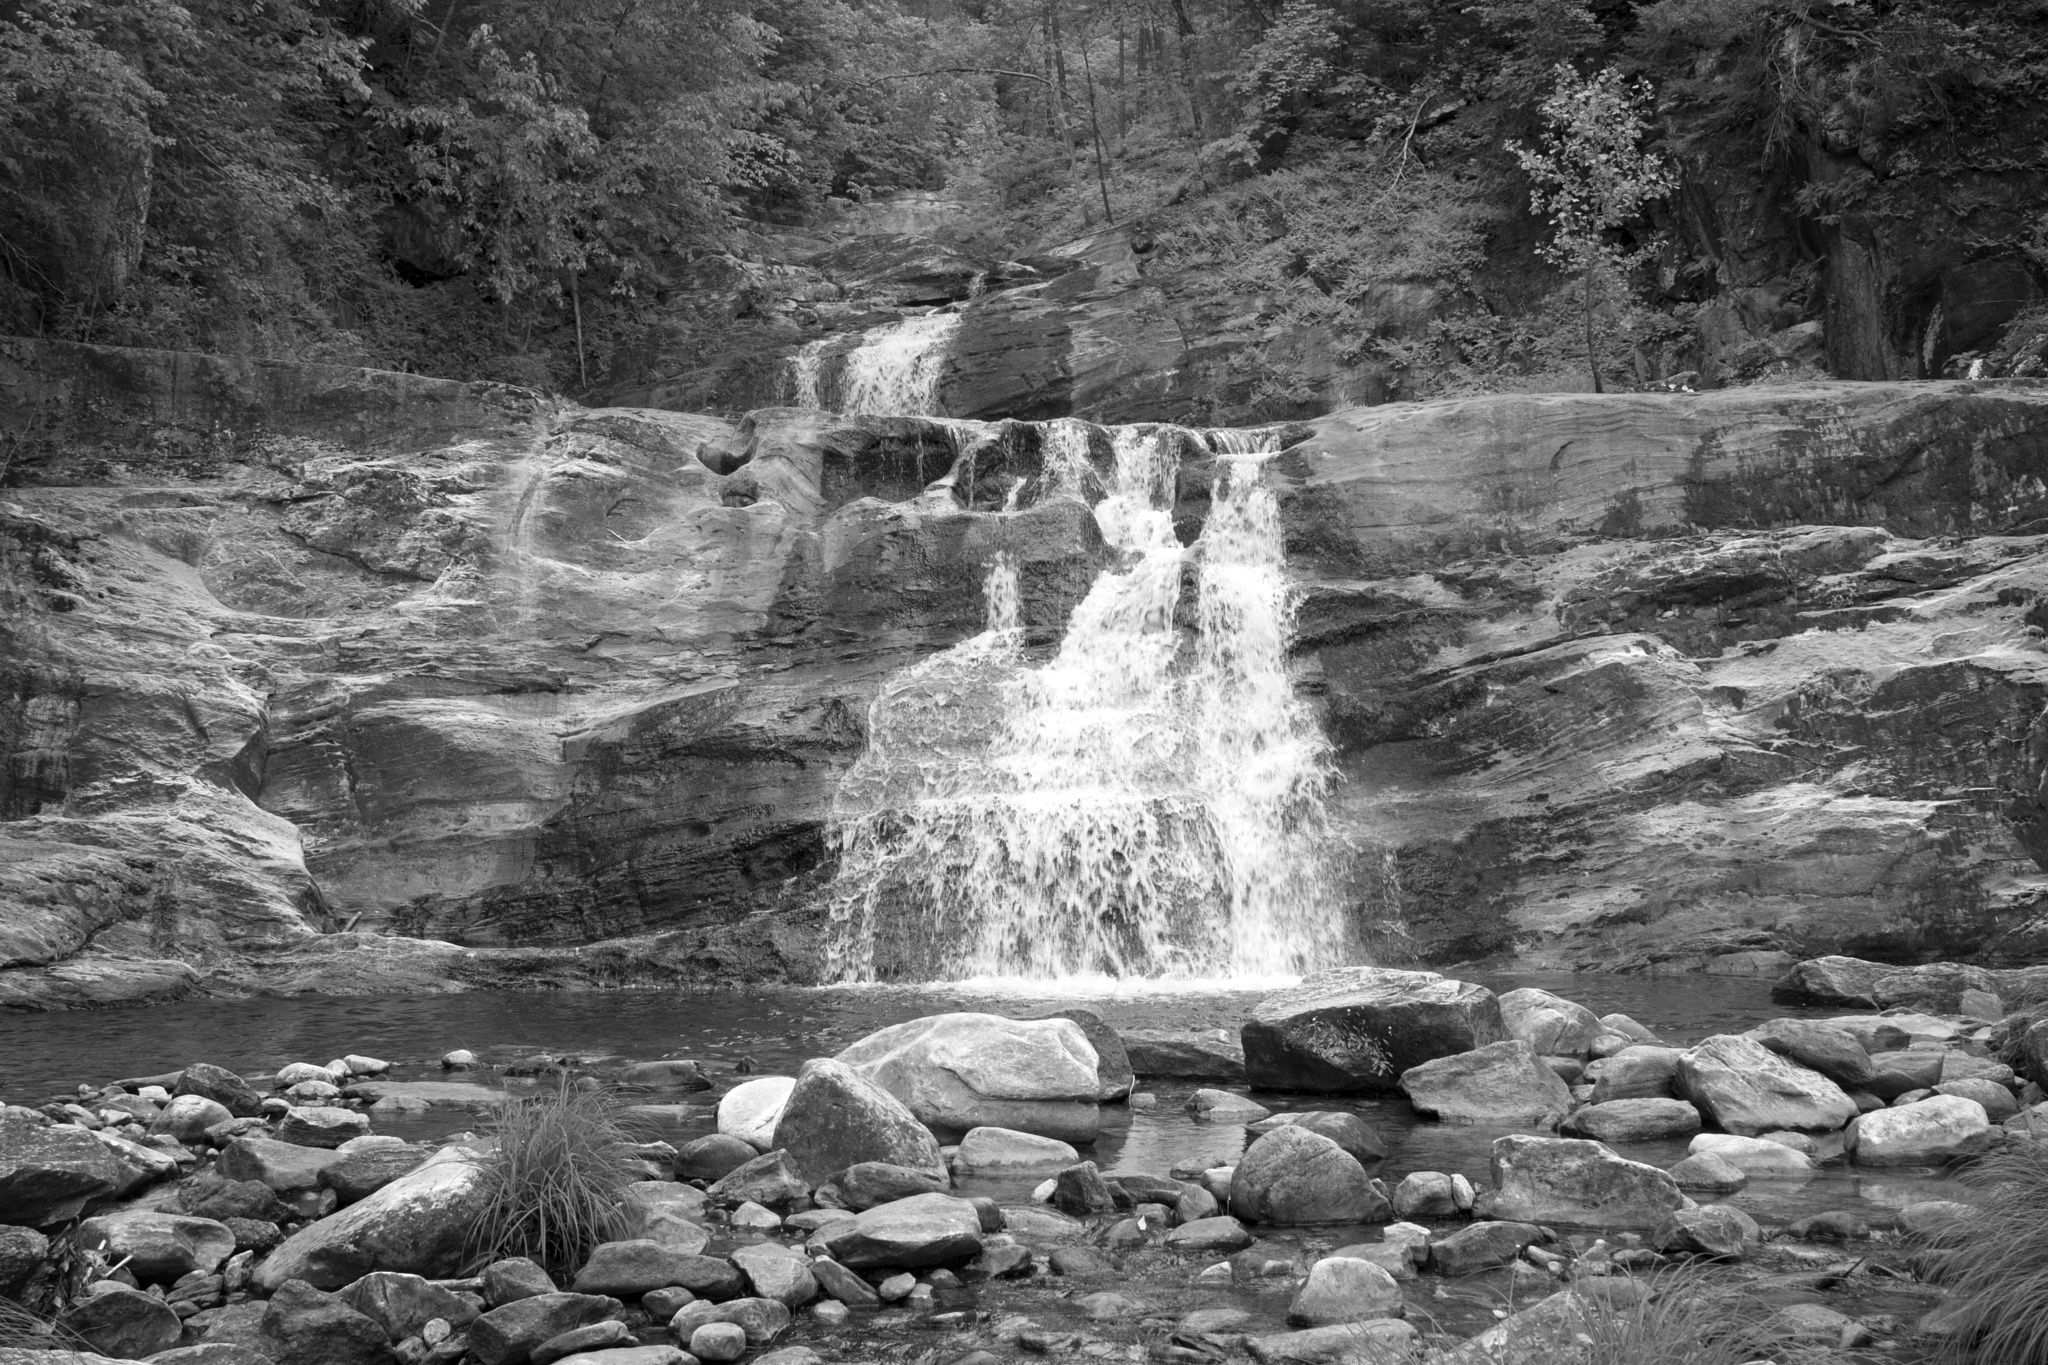 KentFalls I bw - Black and white image of Kent Falls